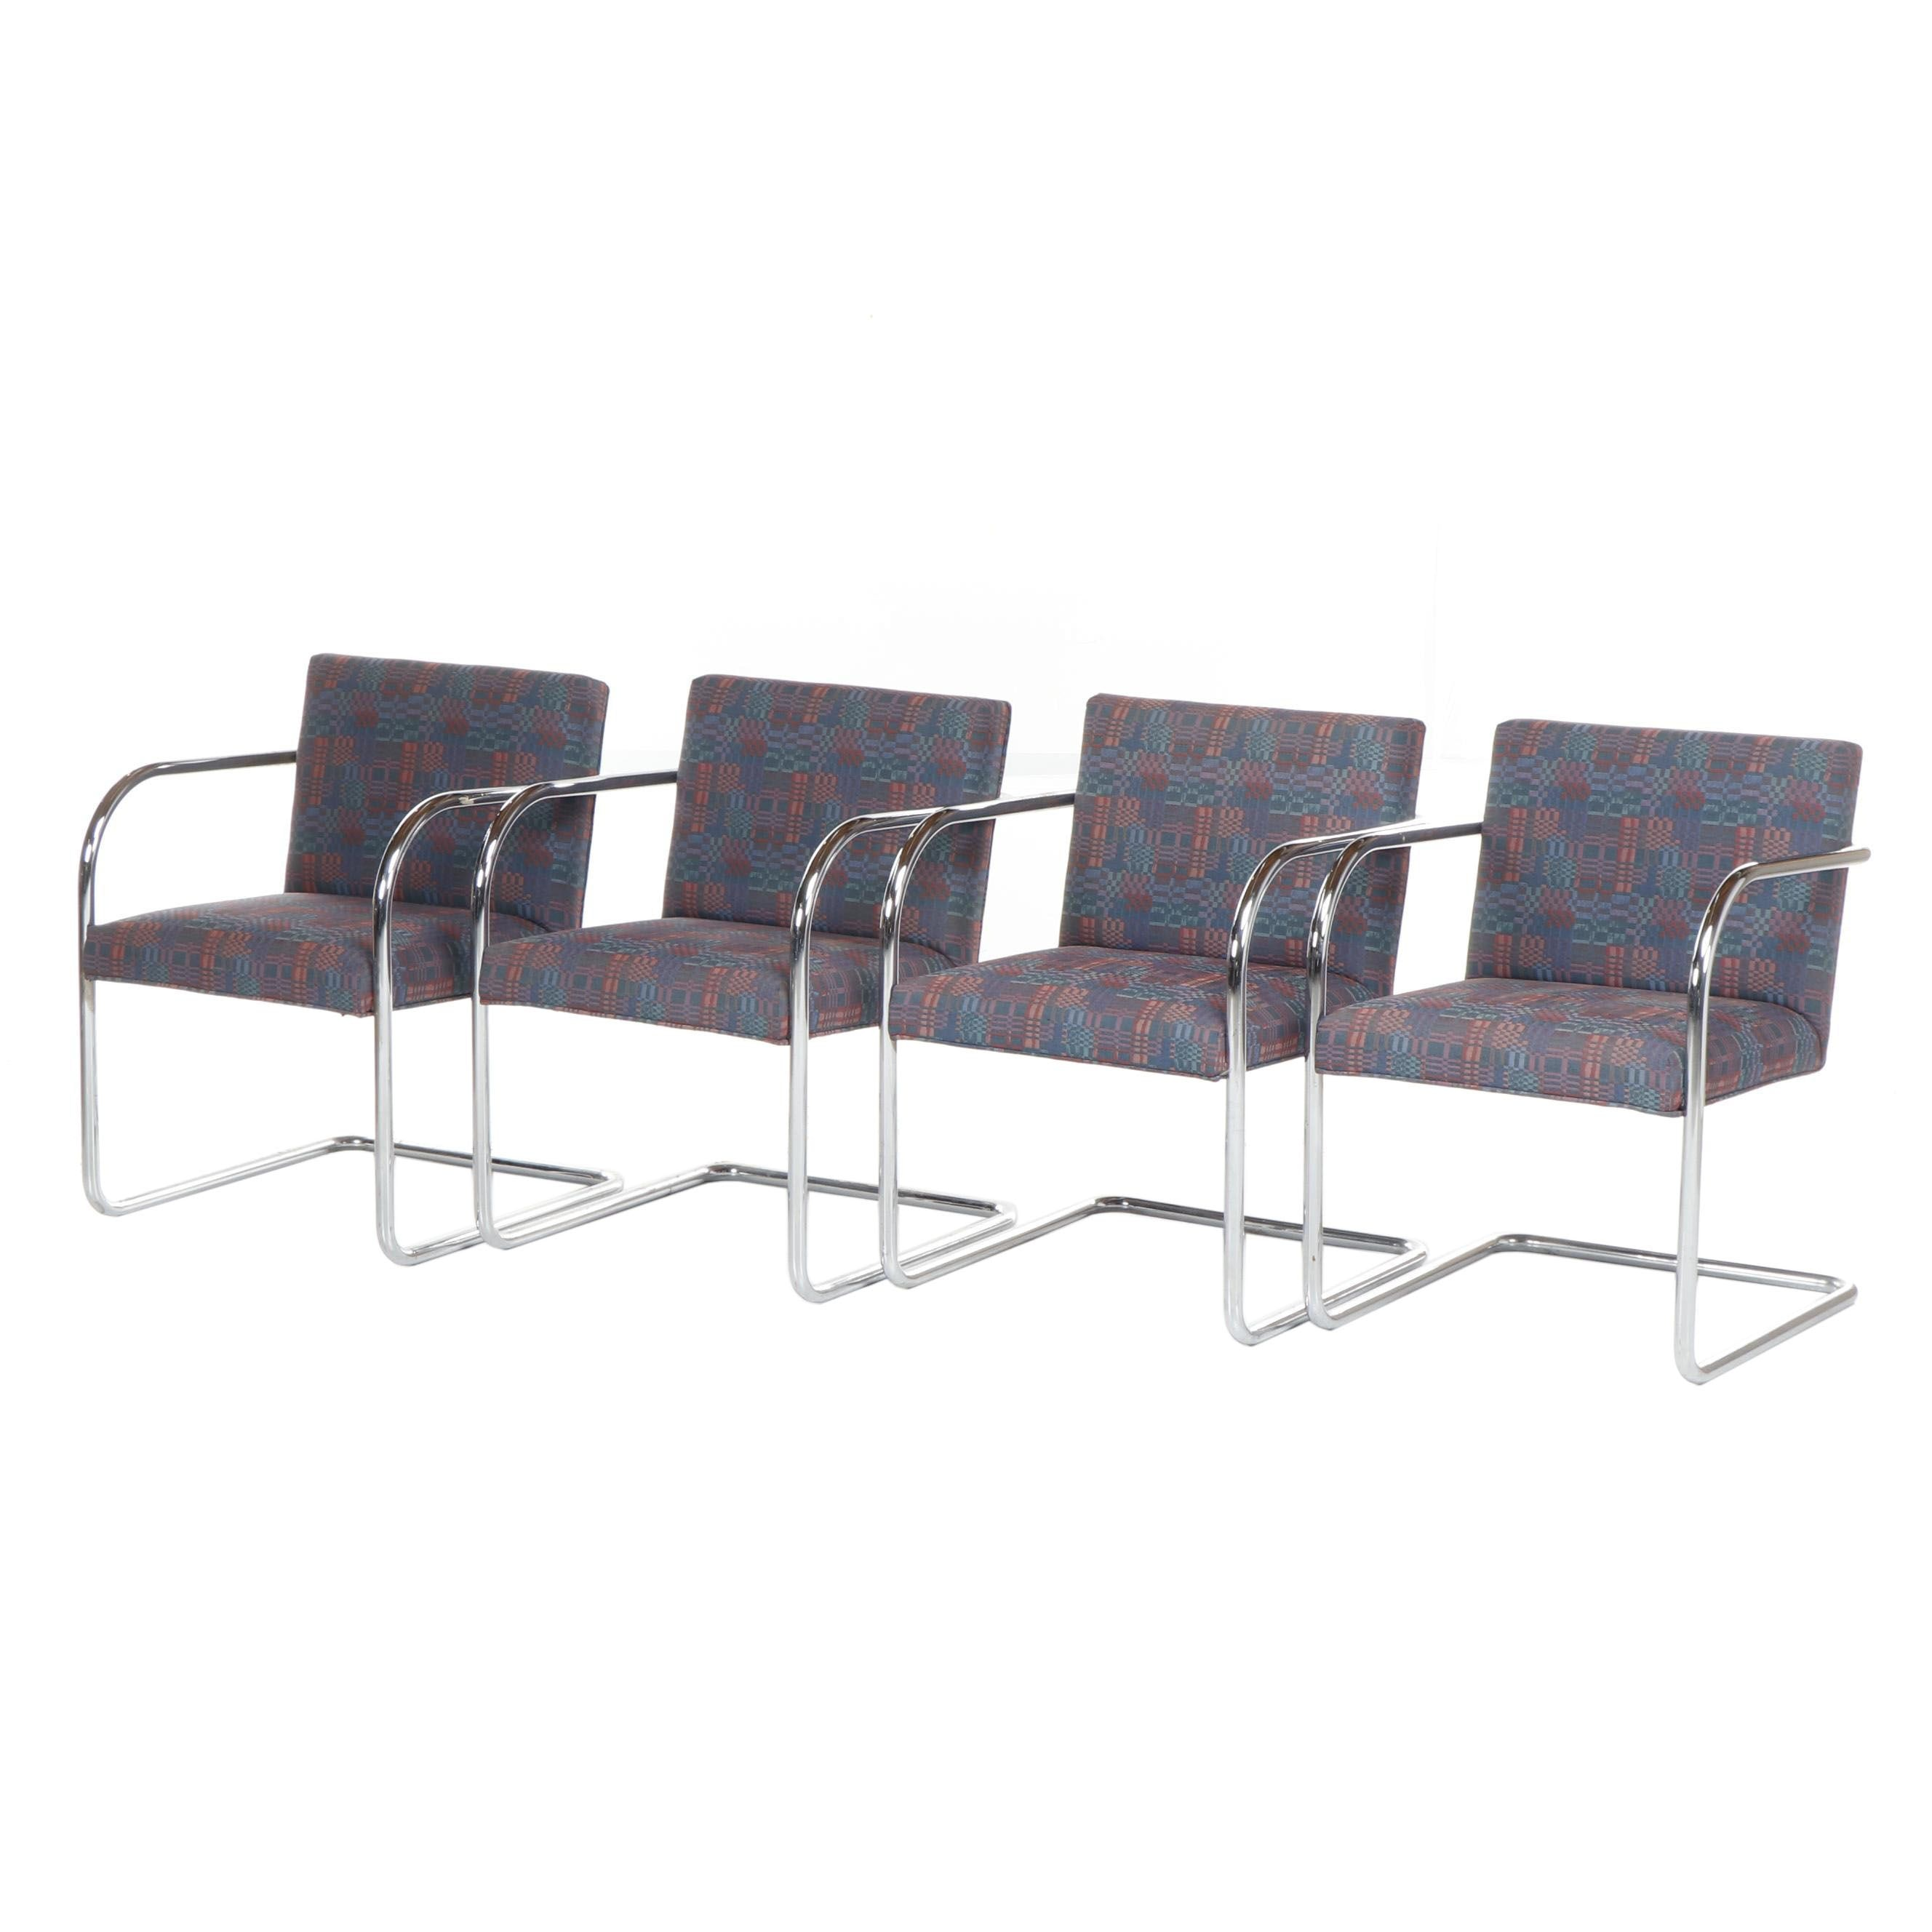 Chrome Cantilever Armchairs in the Style of Mies van der Rohe, Circa 1980